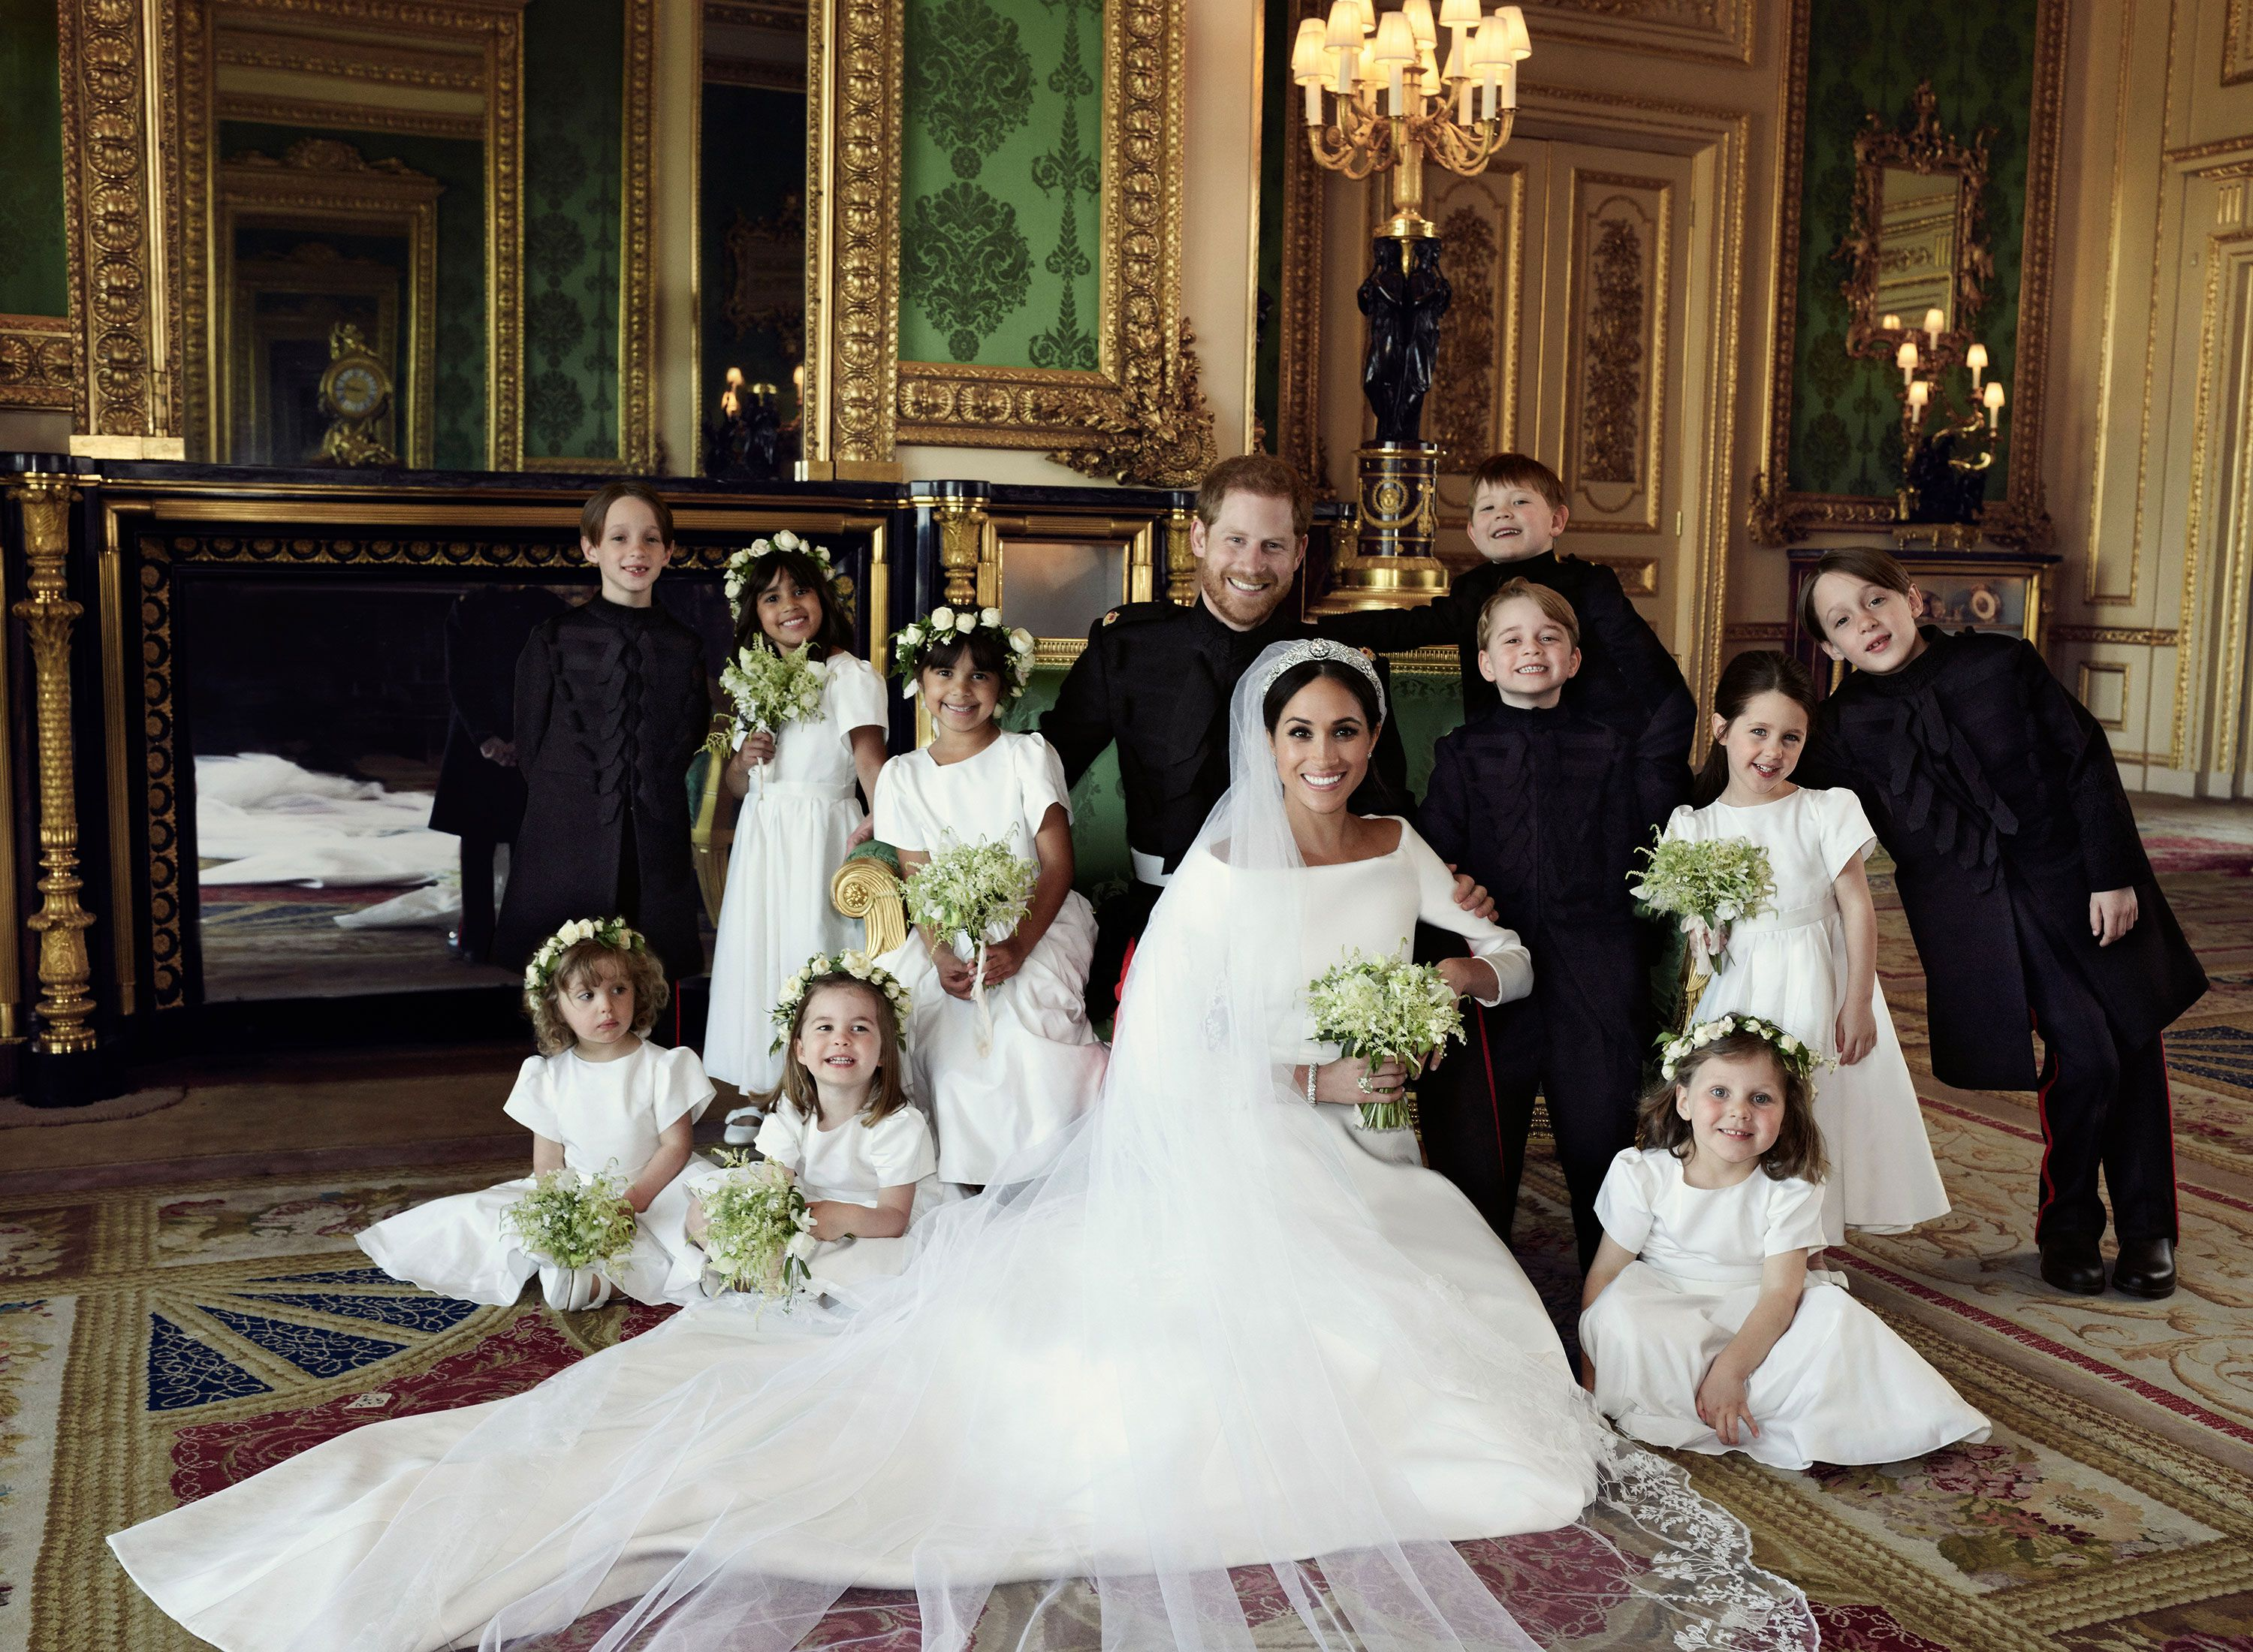 Family Portrait Harry And Meghan Wedding